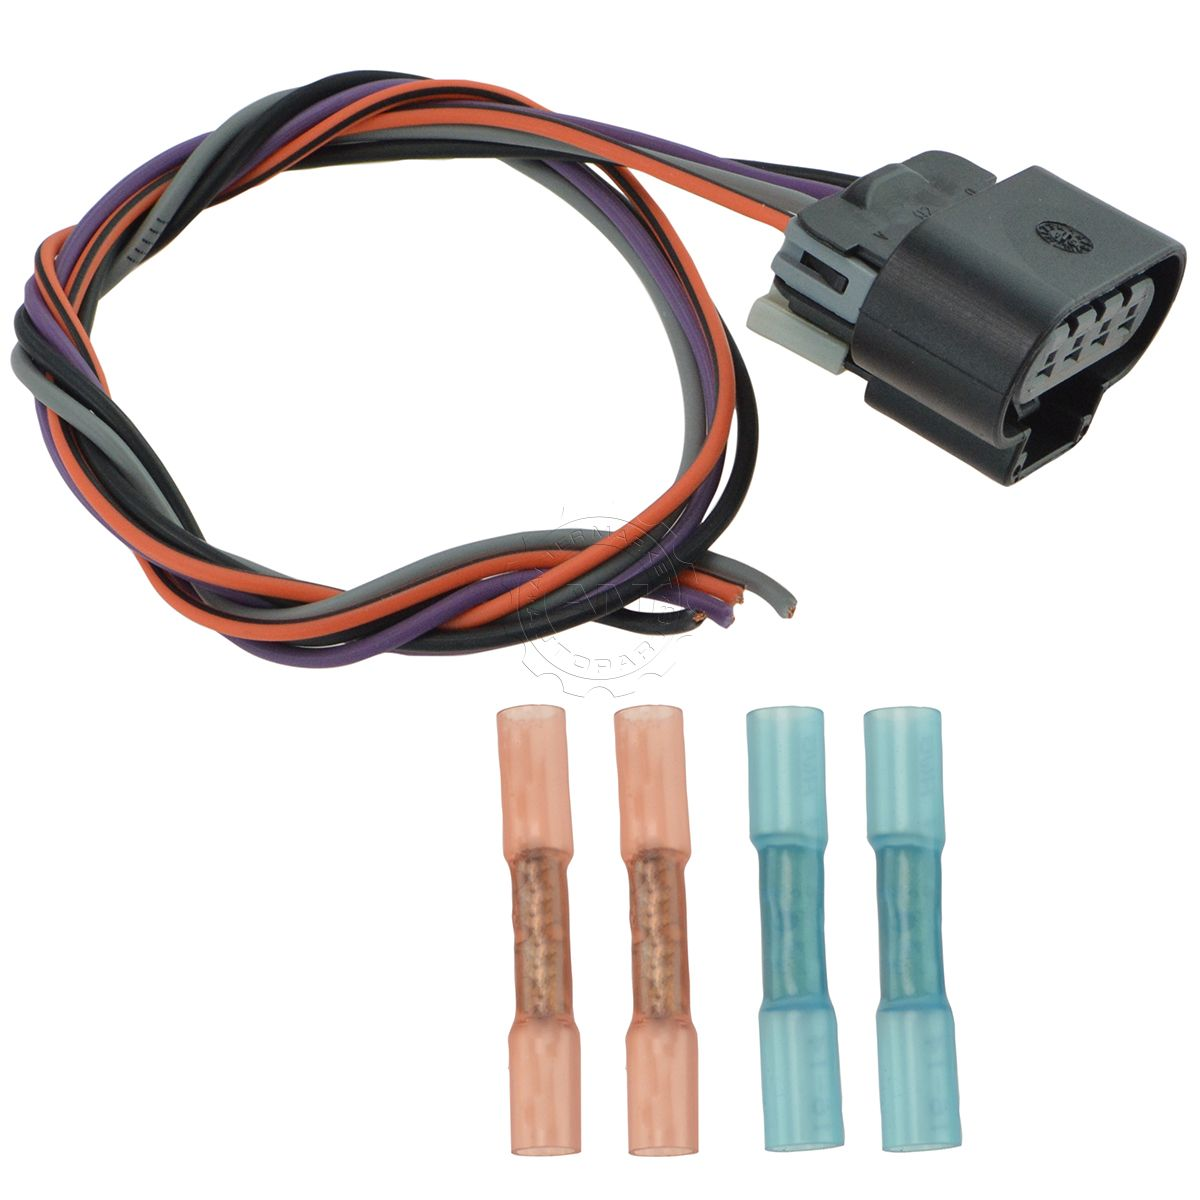 Delphi Fa10003 Fuel Pump Wiring Harness Connector Oval Plug For Gmc Chevy New